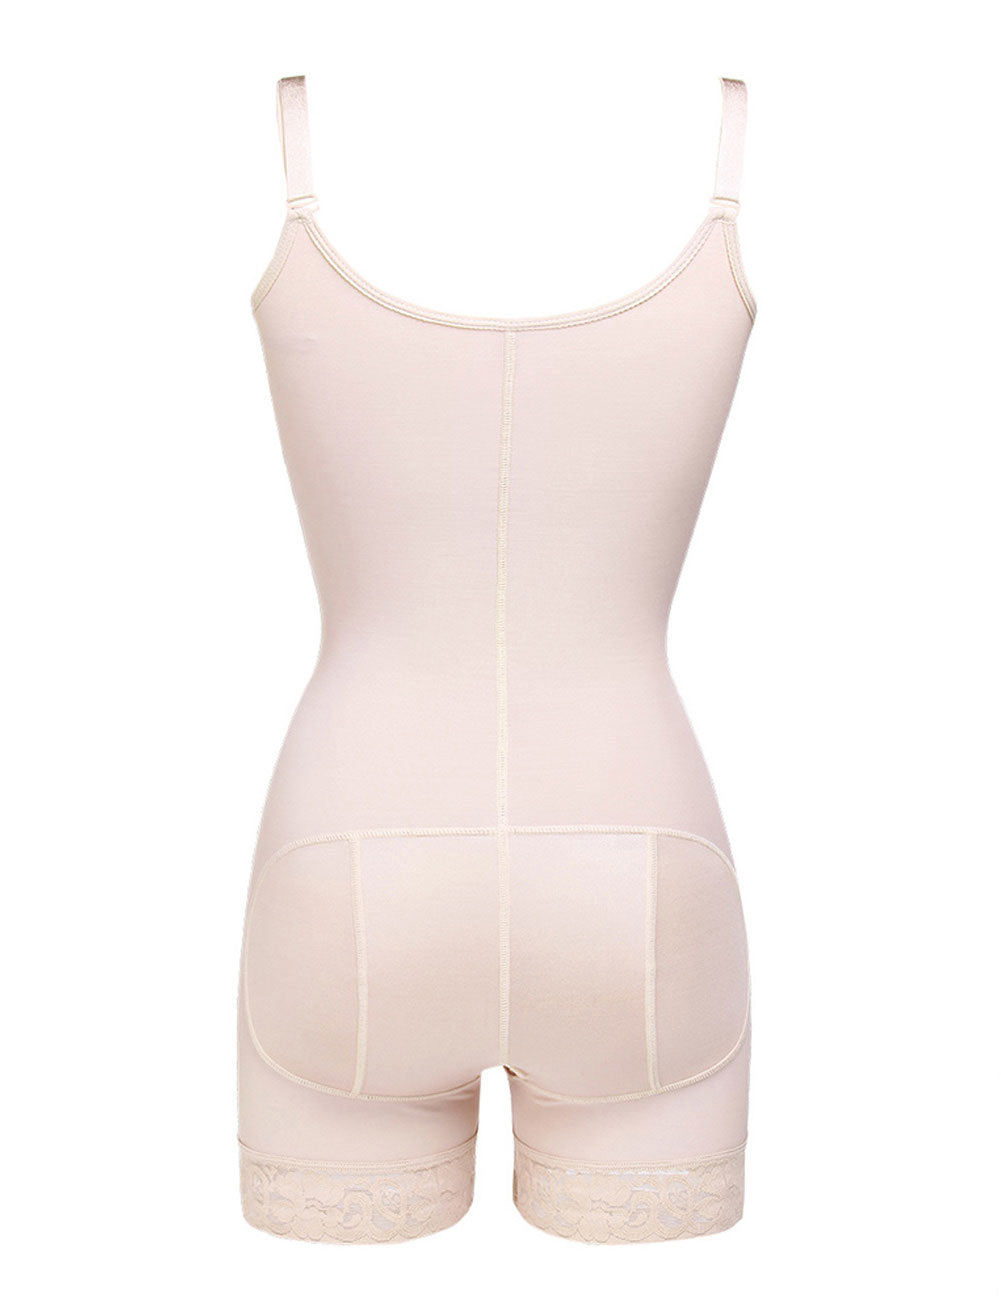 Curvyfeel Adjustable Straps Firm Control Body Shaper